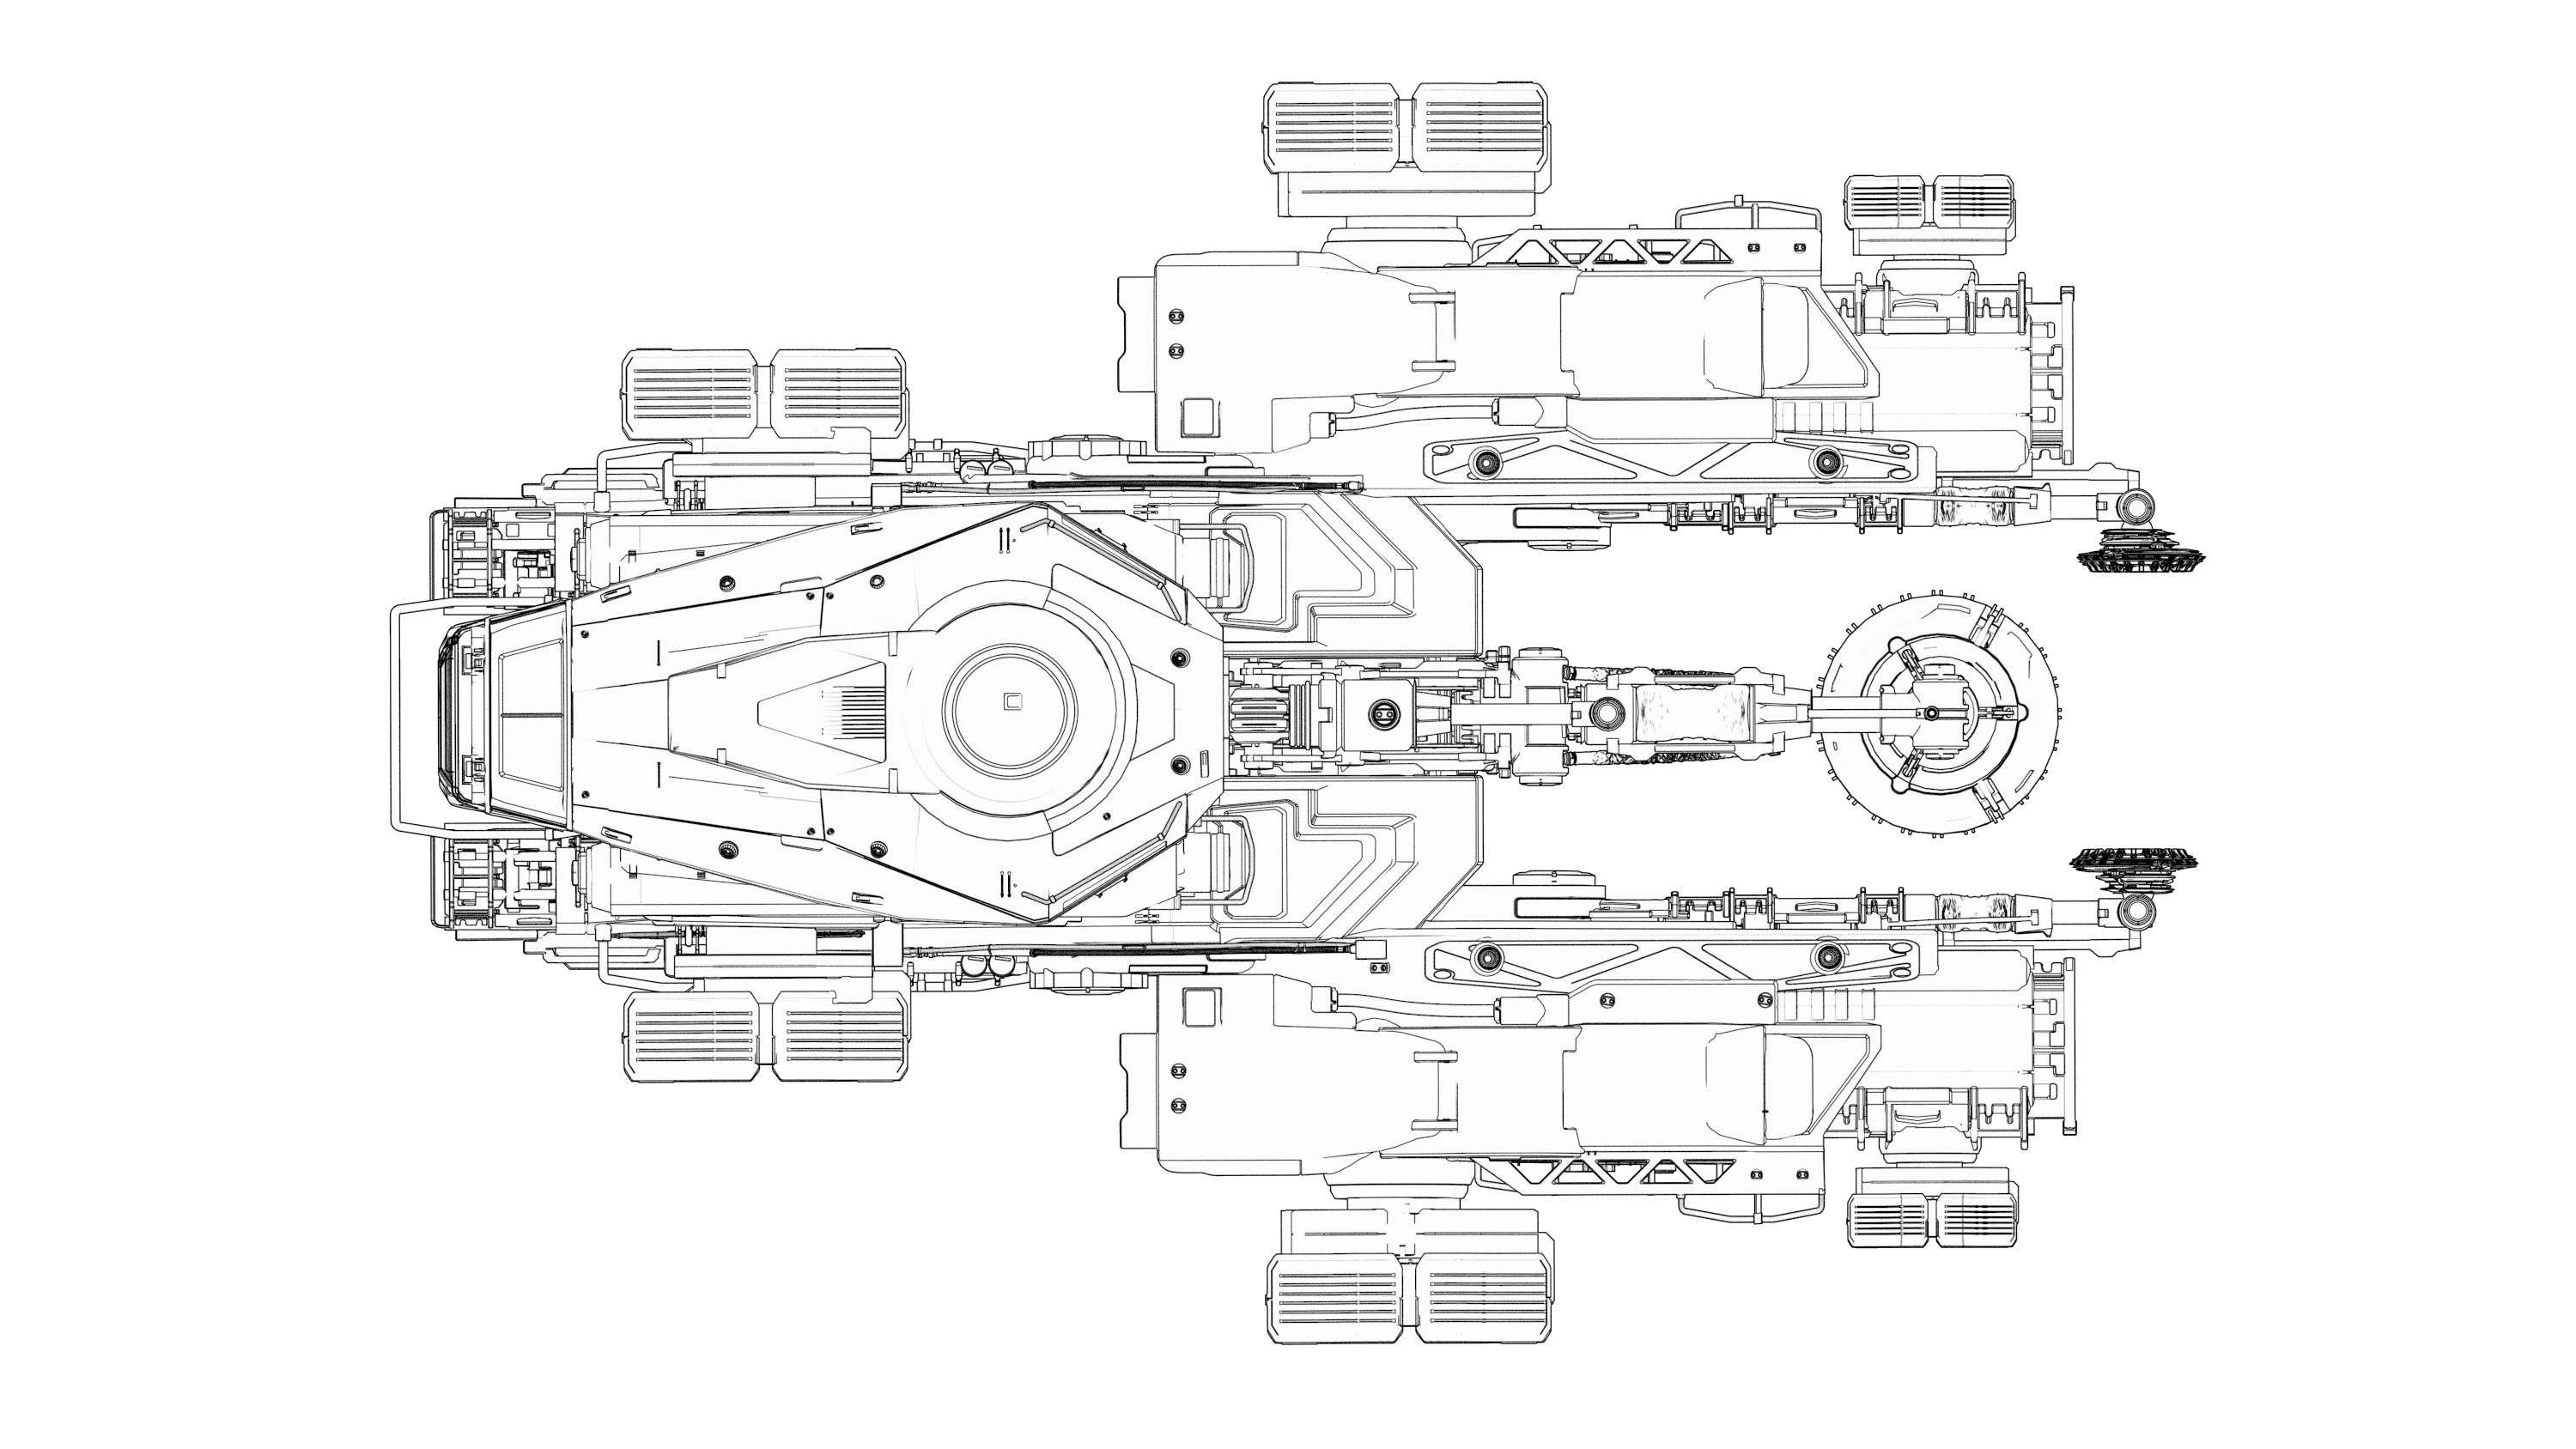 Top view of the Argo SRV